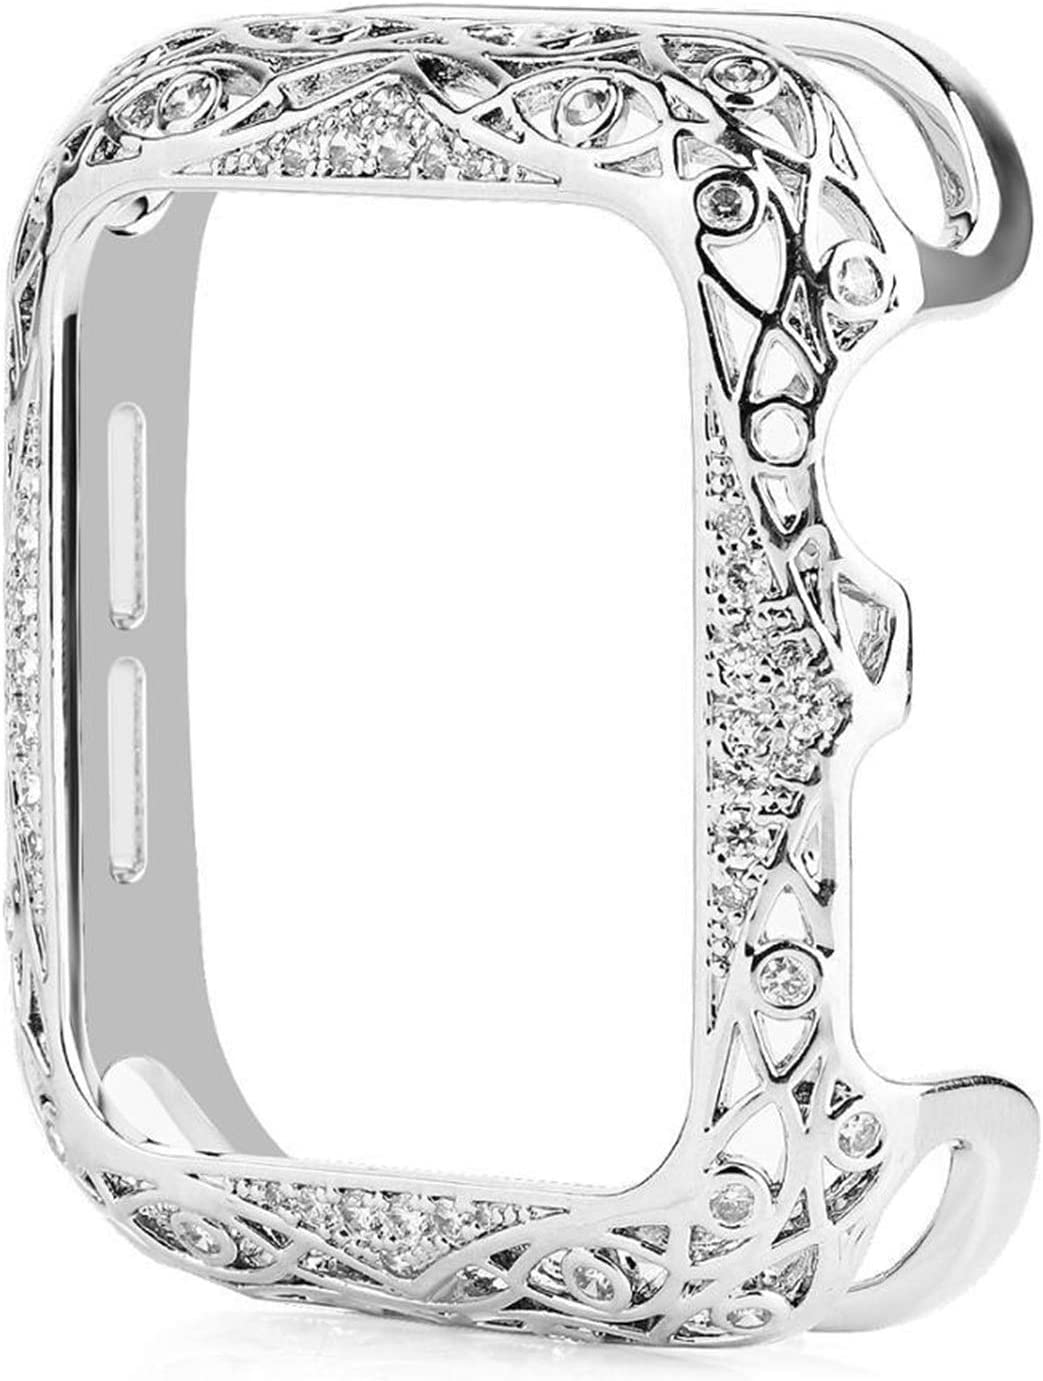 FAAGFC Carved Copper Women Luxury Bumper for Apple Watch Case 44/40mm 42/38mm Diamond Bling Metal Cover for IWatch Series SE/6/5/4/3/2 (Color : 1.Silver, Dial Diameter : 42mm)